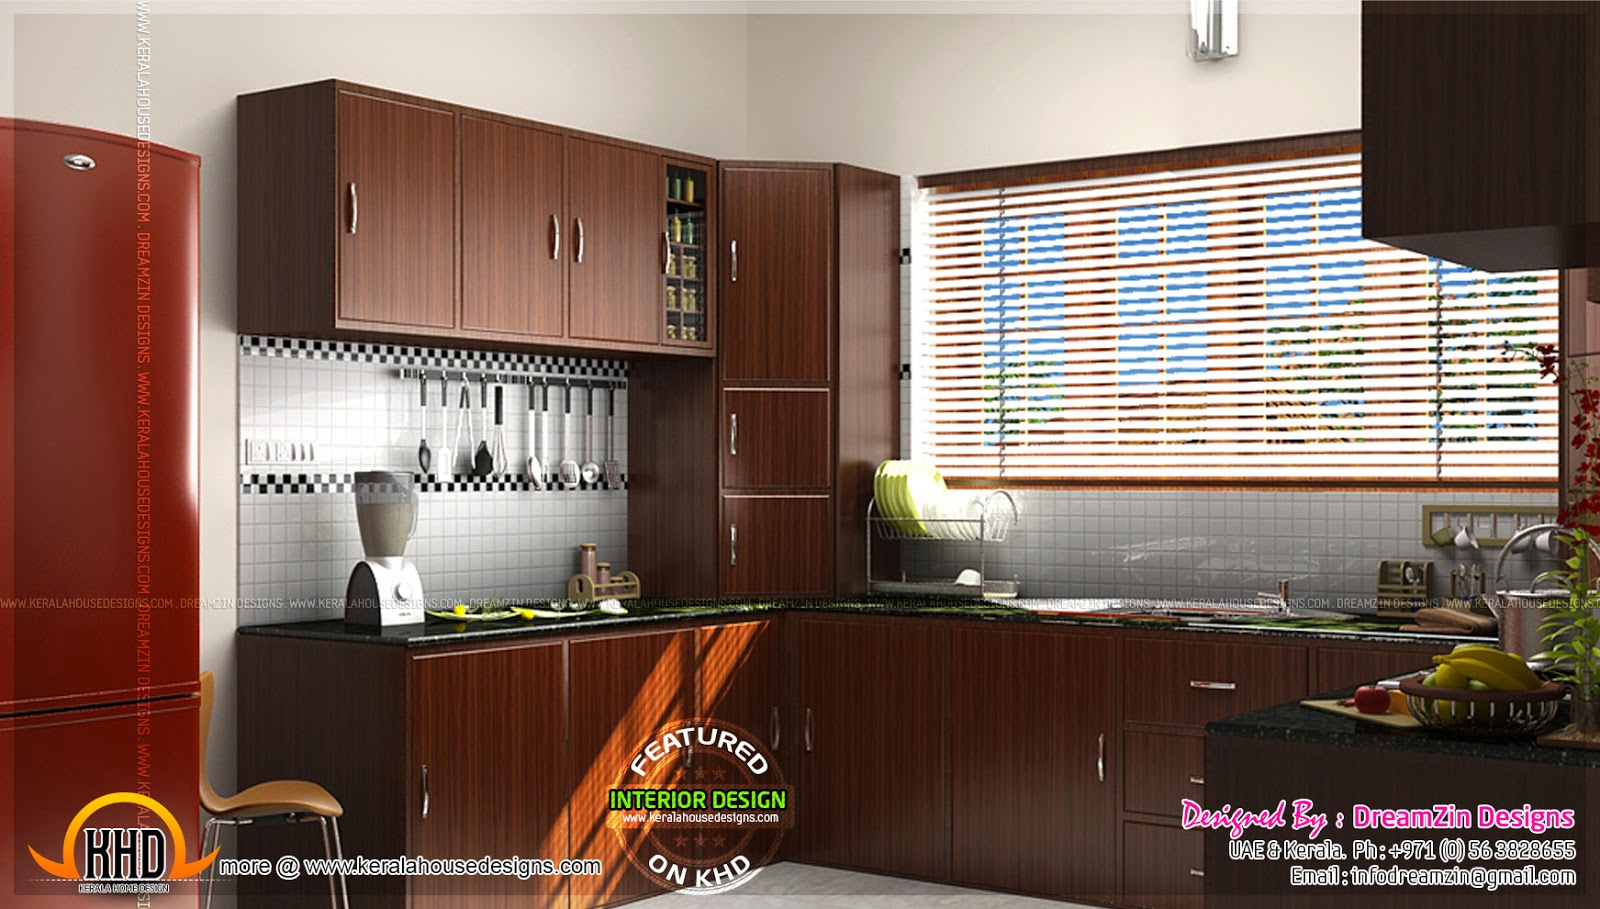 Kitchen interior dining area design kerala home design and floor plans Home interior design ideas for kitchen